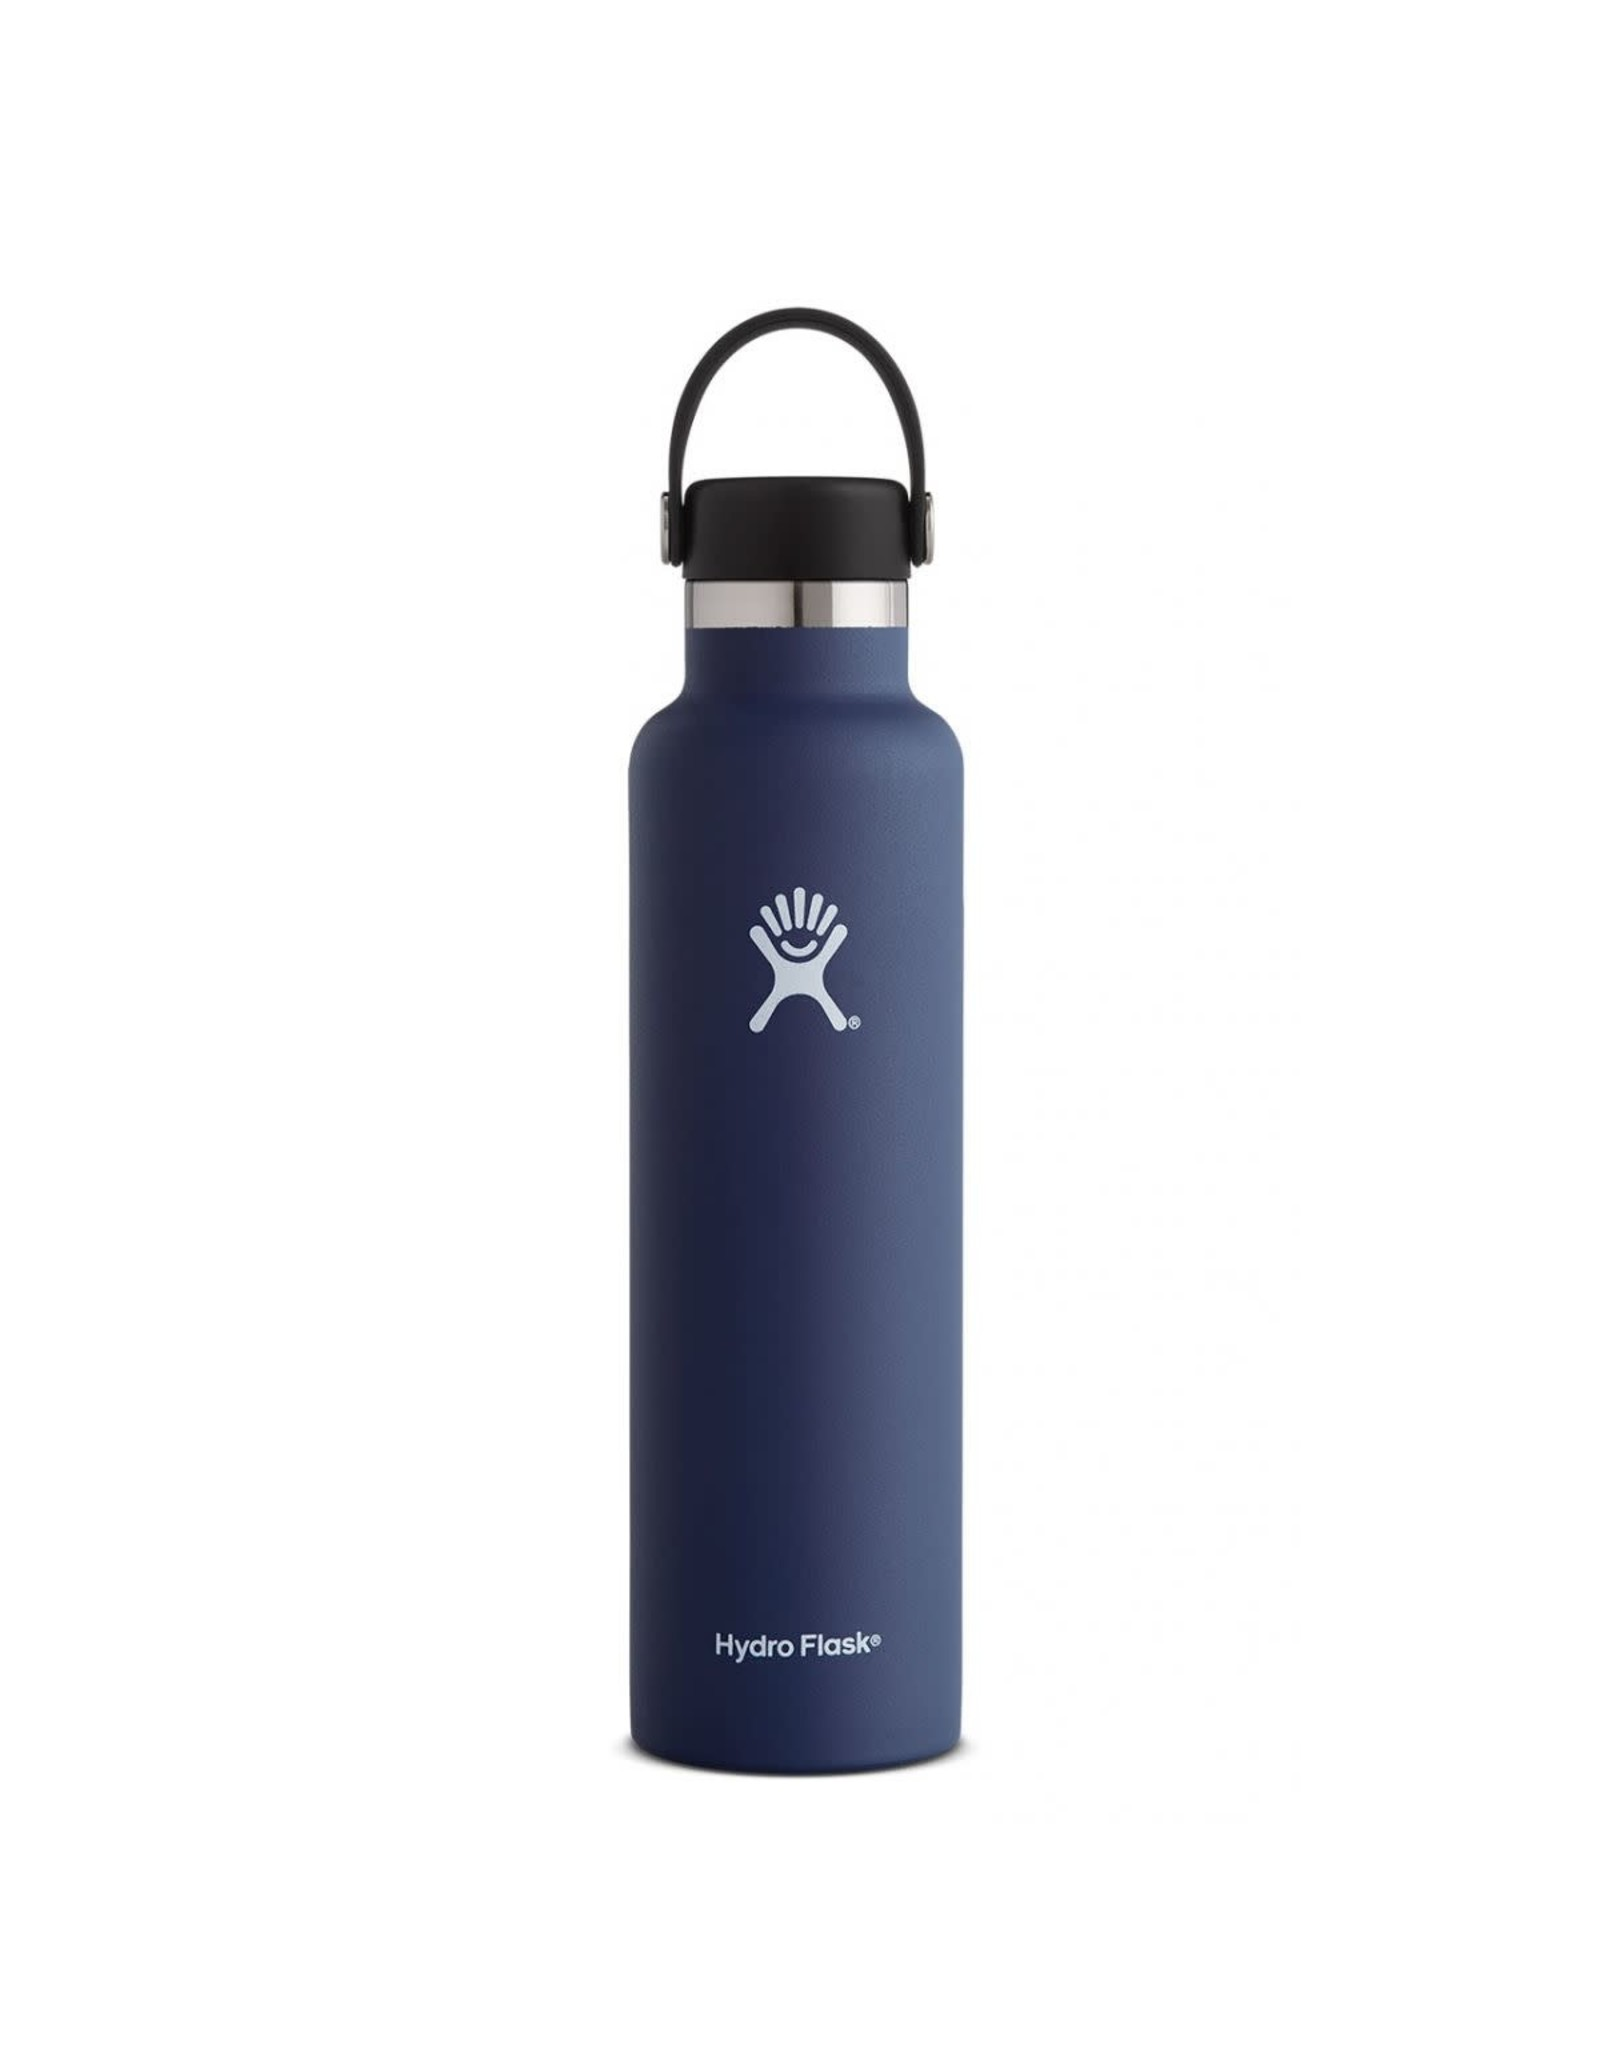 Hydro Flask Hydro Flask 24oz Standard Mouth with Flex Cap Cobalt